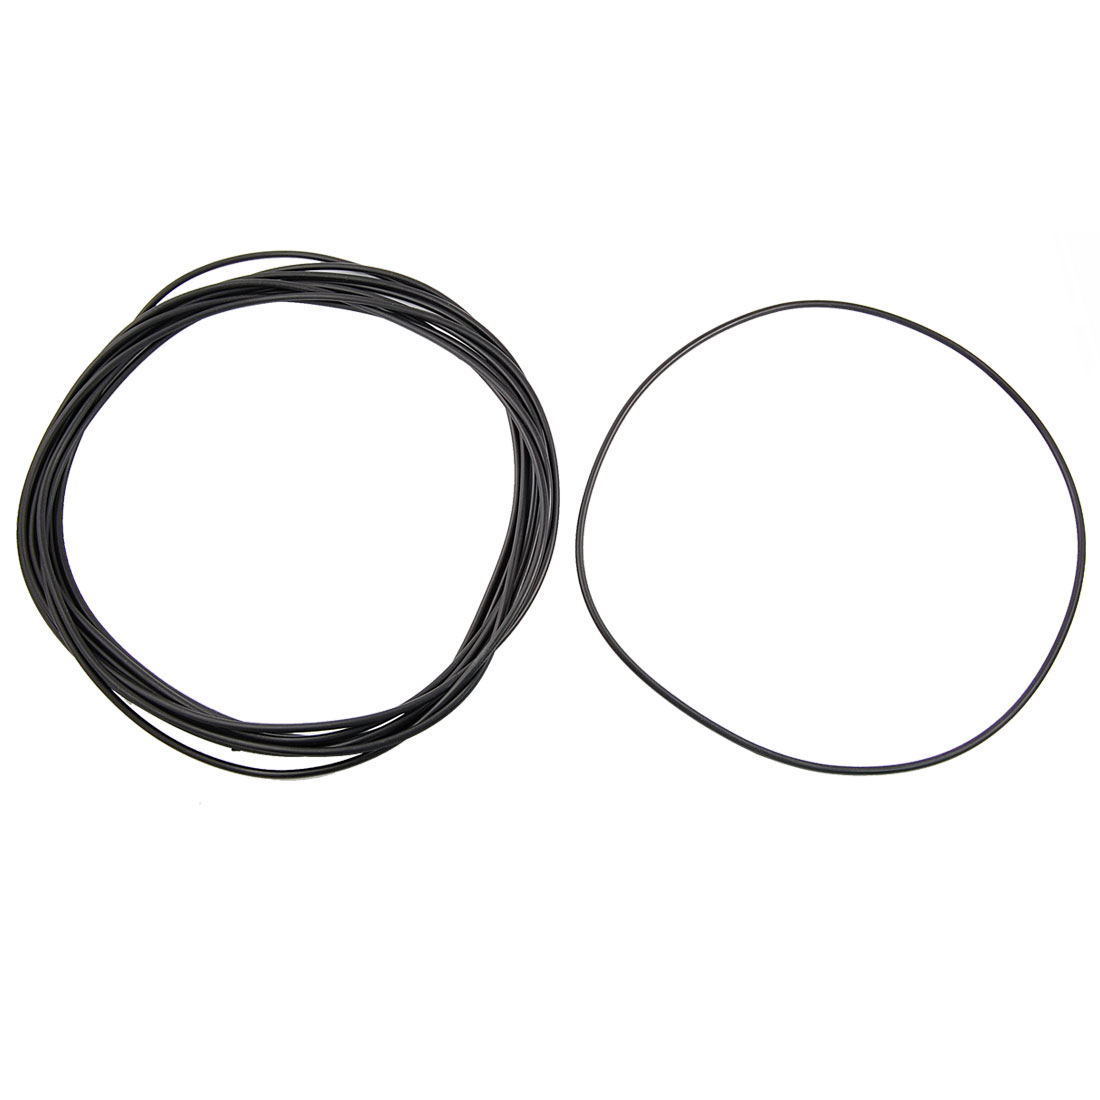 10 Pcs Metric O Rings Black Nitrile Rubber 210mm OD 3.5mm Thick